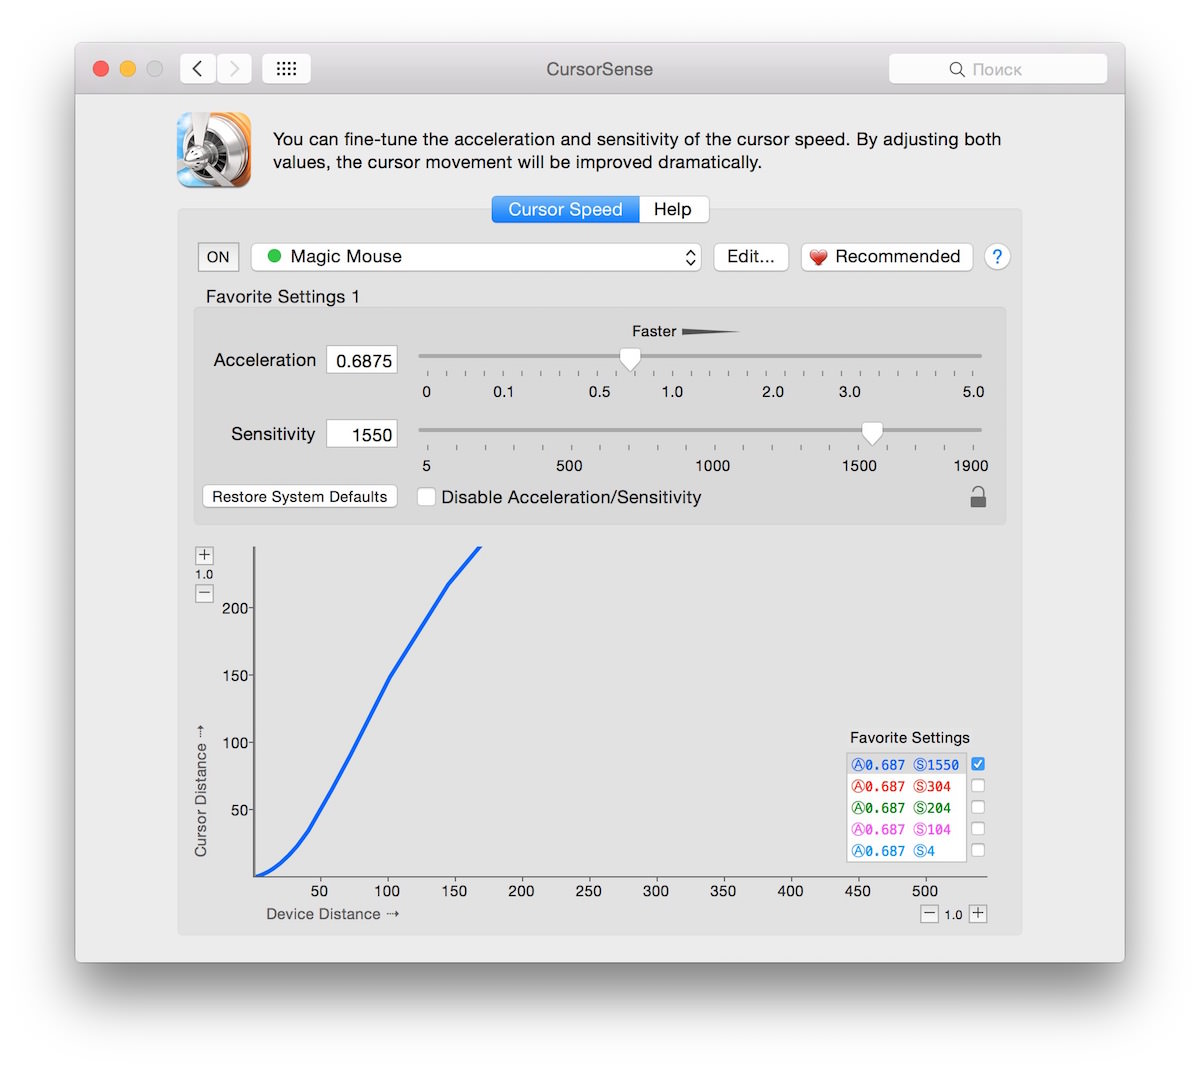 Magic Mouse Apple OS X Yosemite Mavericks Setting CursorSense  Acceleration